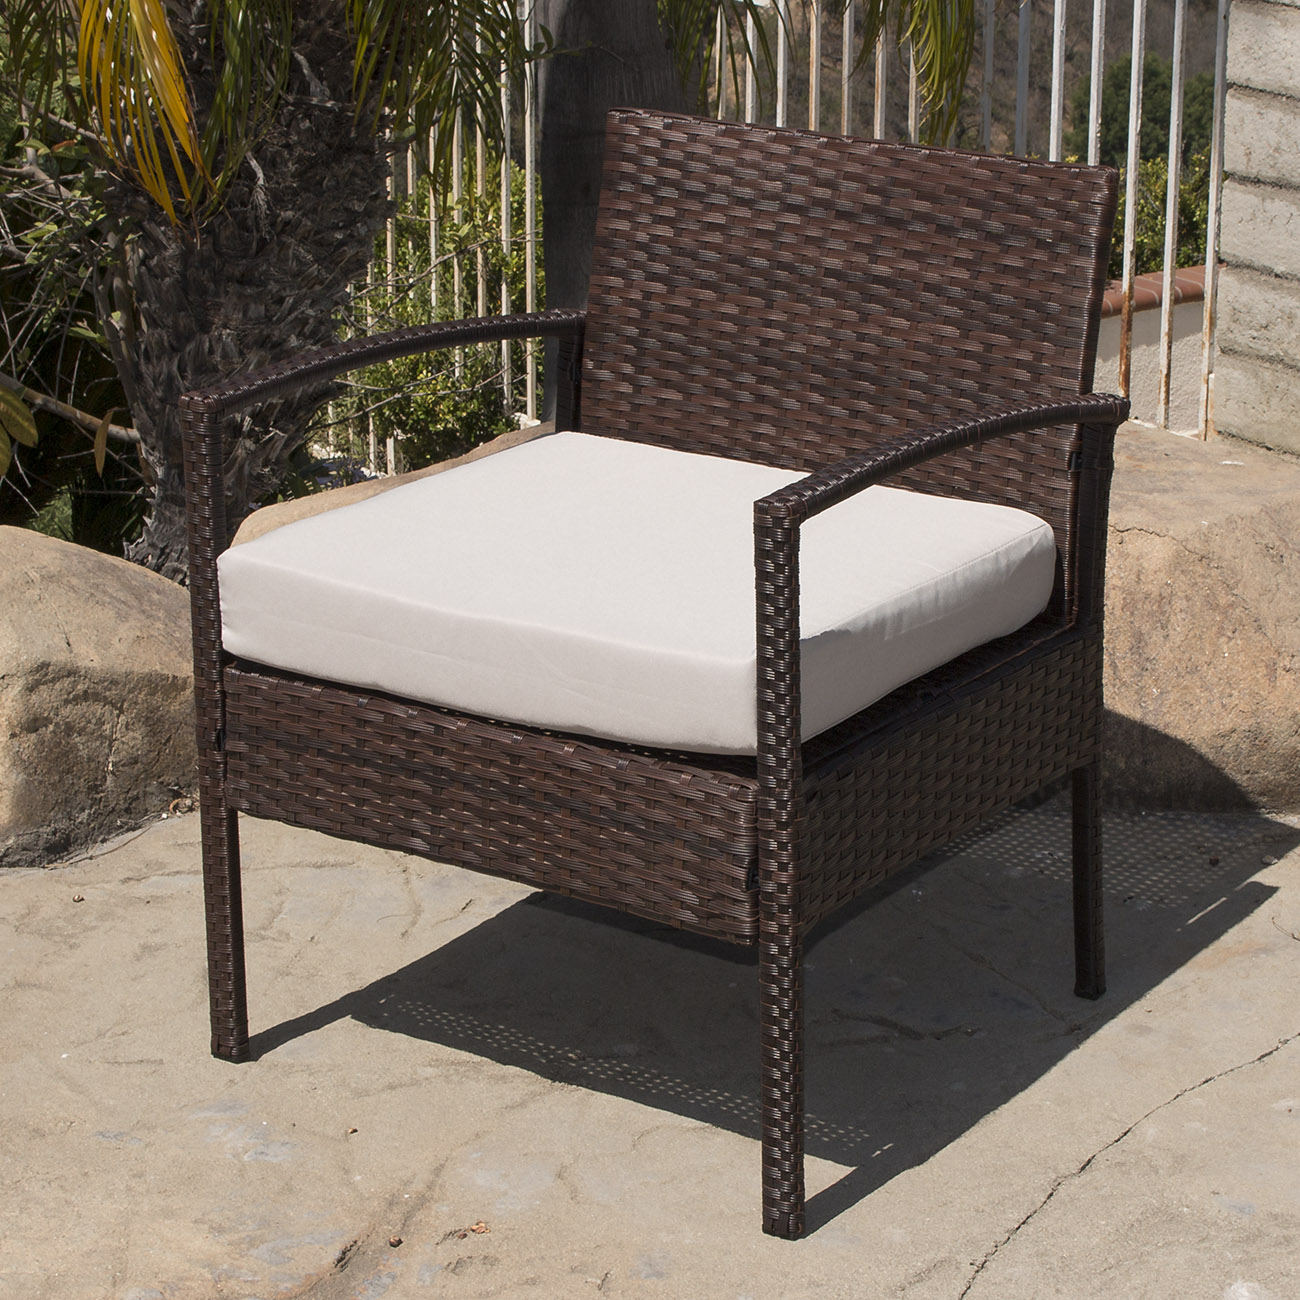 Exceptional 4PC Rattan Wicker Patio Furniture Set Sofa Chair